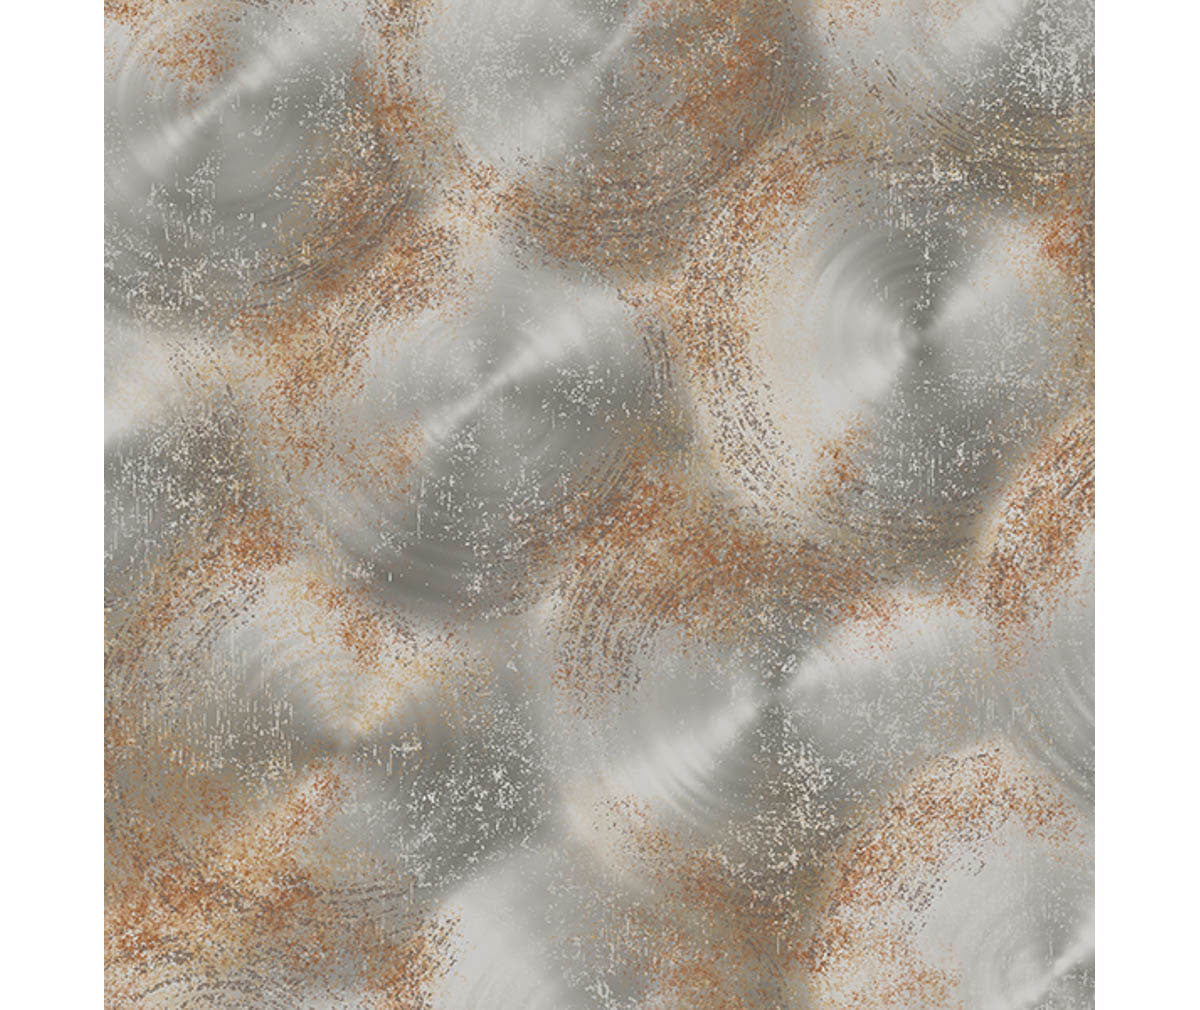 Tarnished Metal Silver Metallic Texture Wallpaper available at Barrydowne Paint